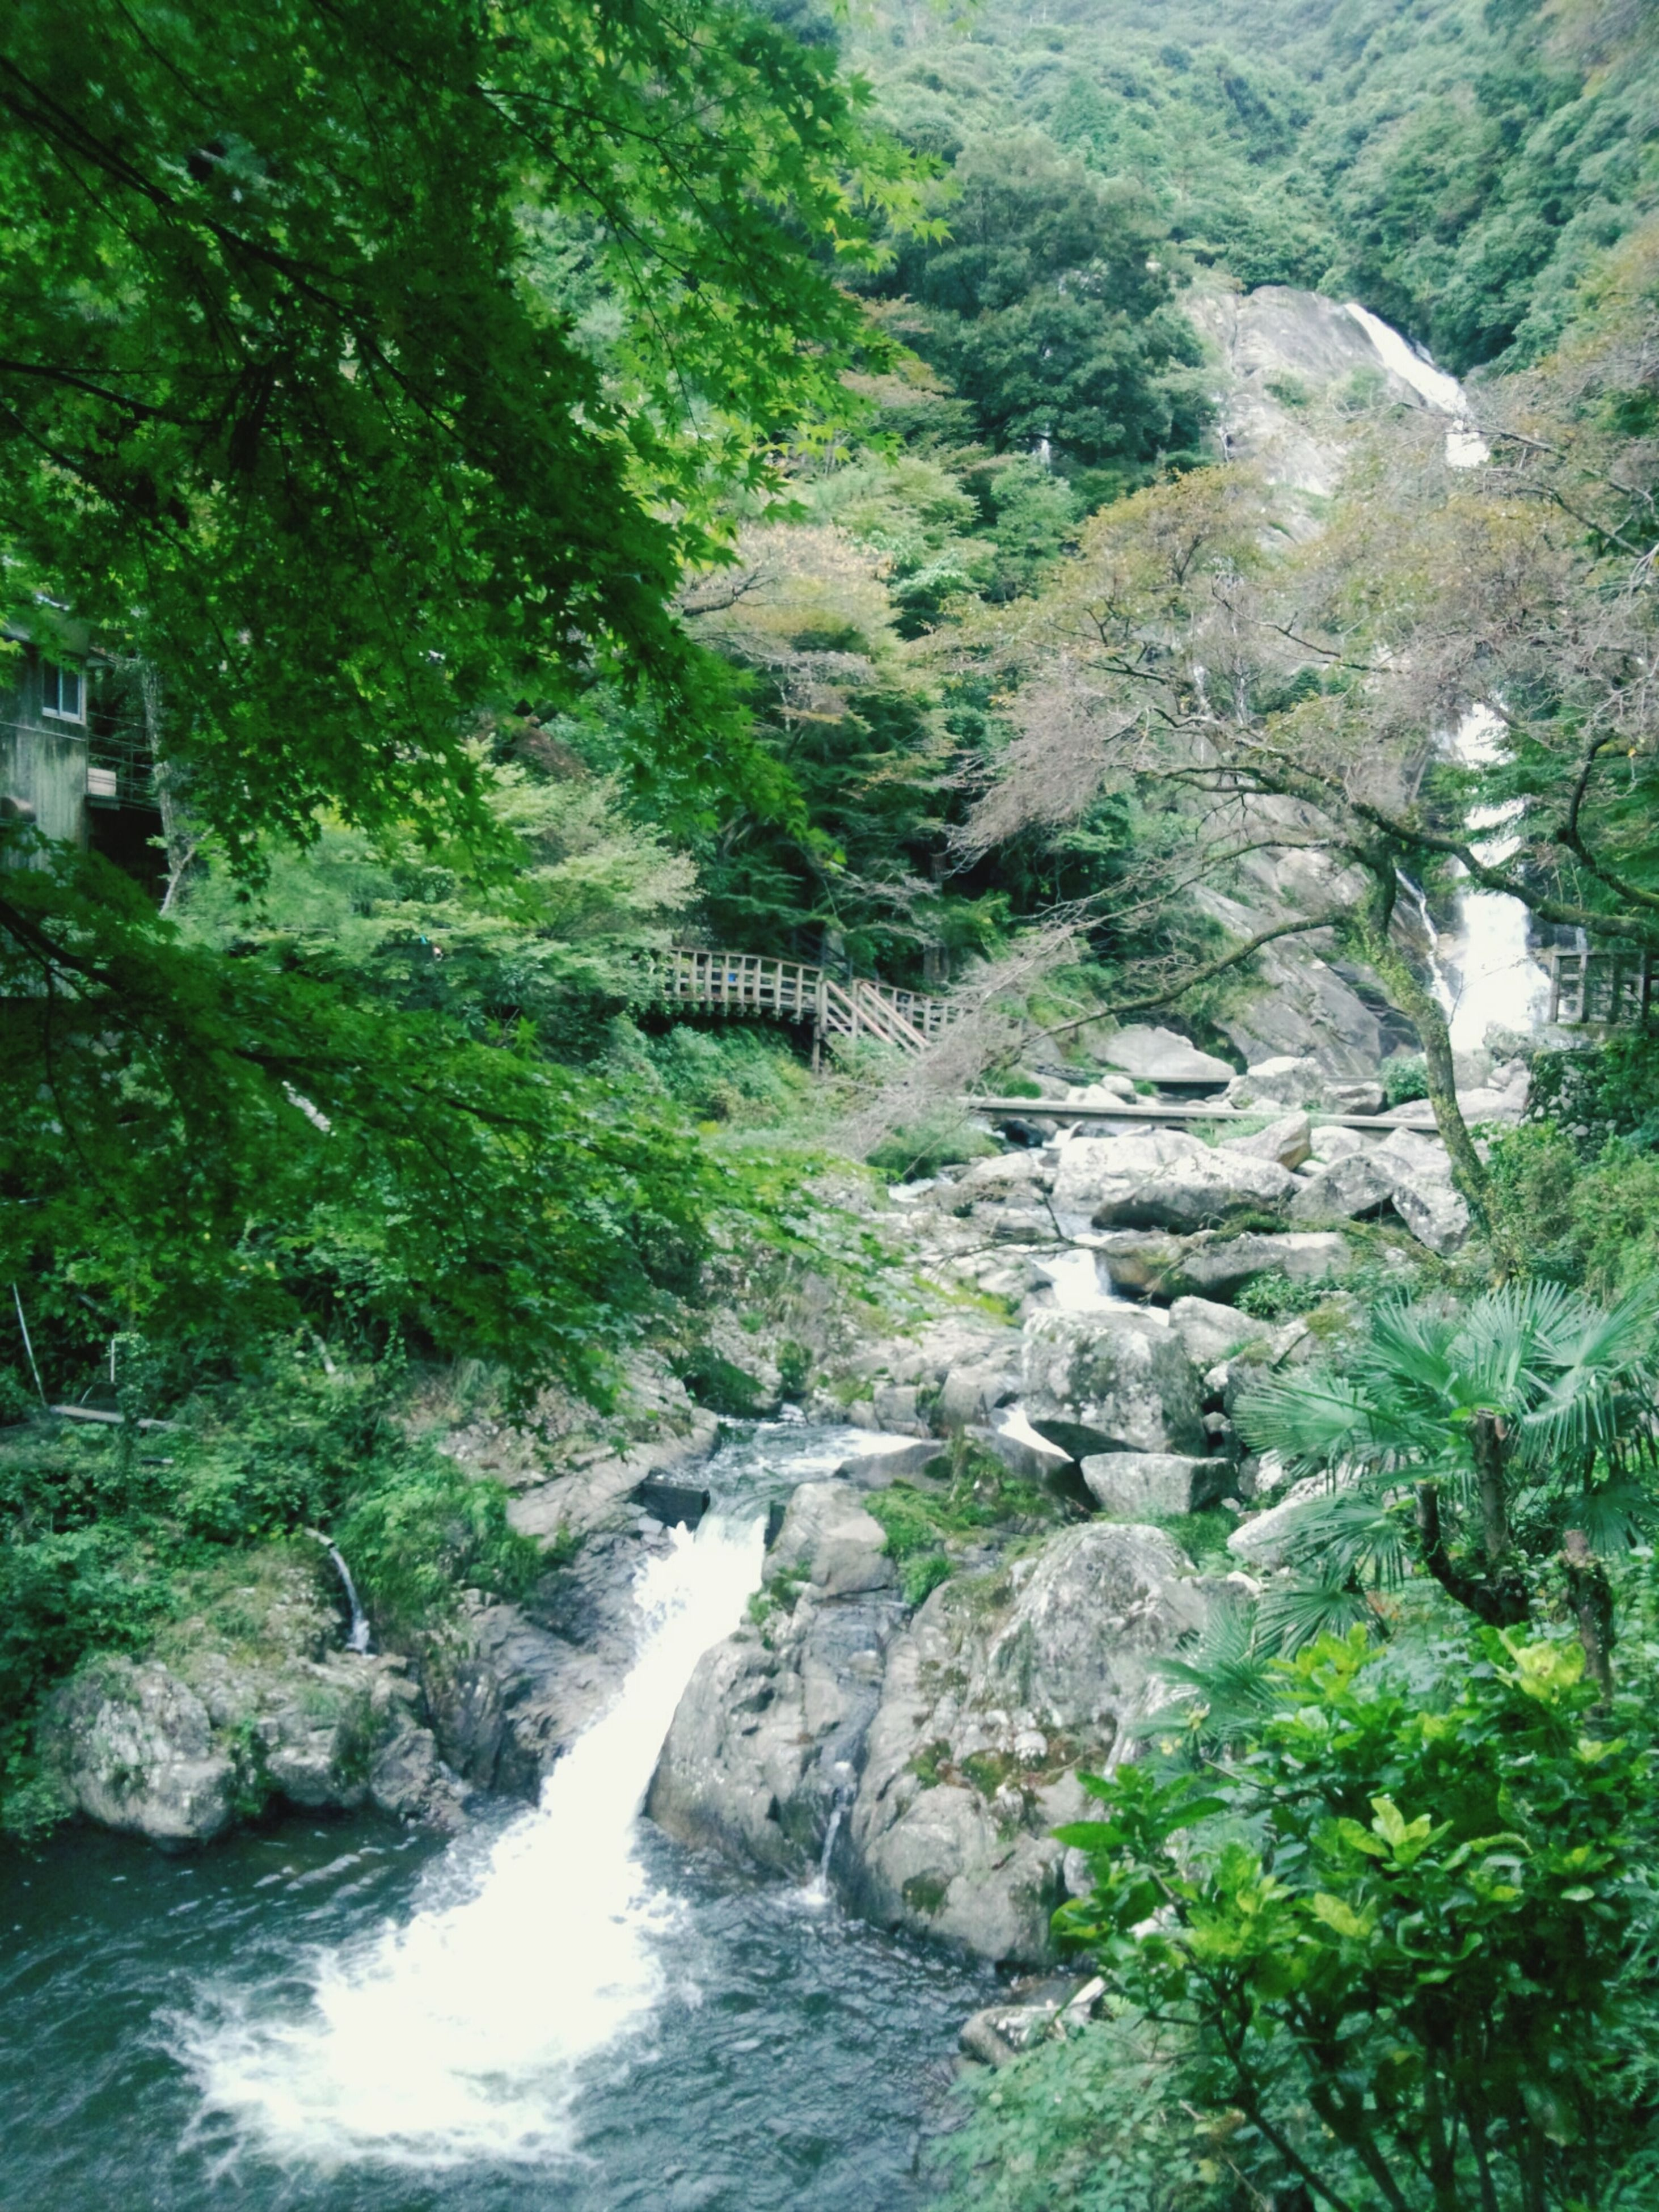 water, tree, waterfall, beauty in nature, rock - object, flowing water, scenics, nature, forest, flowing, stream, rock formation, tranquility, river, tranquil scene, green color, motion, growth, rock, lush foliage